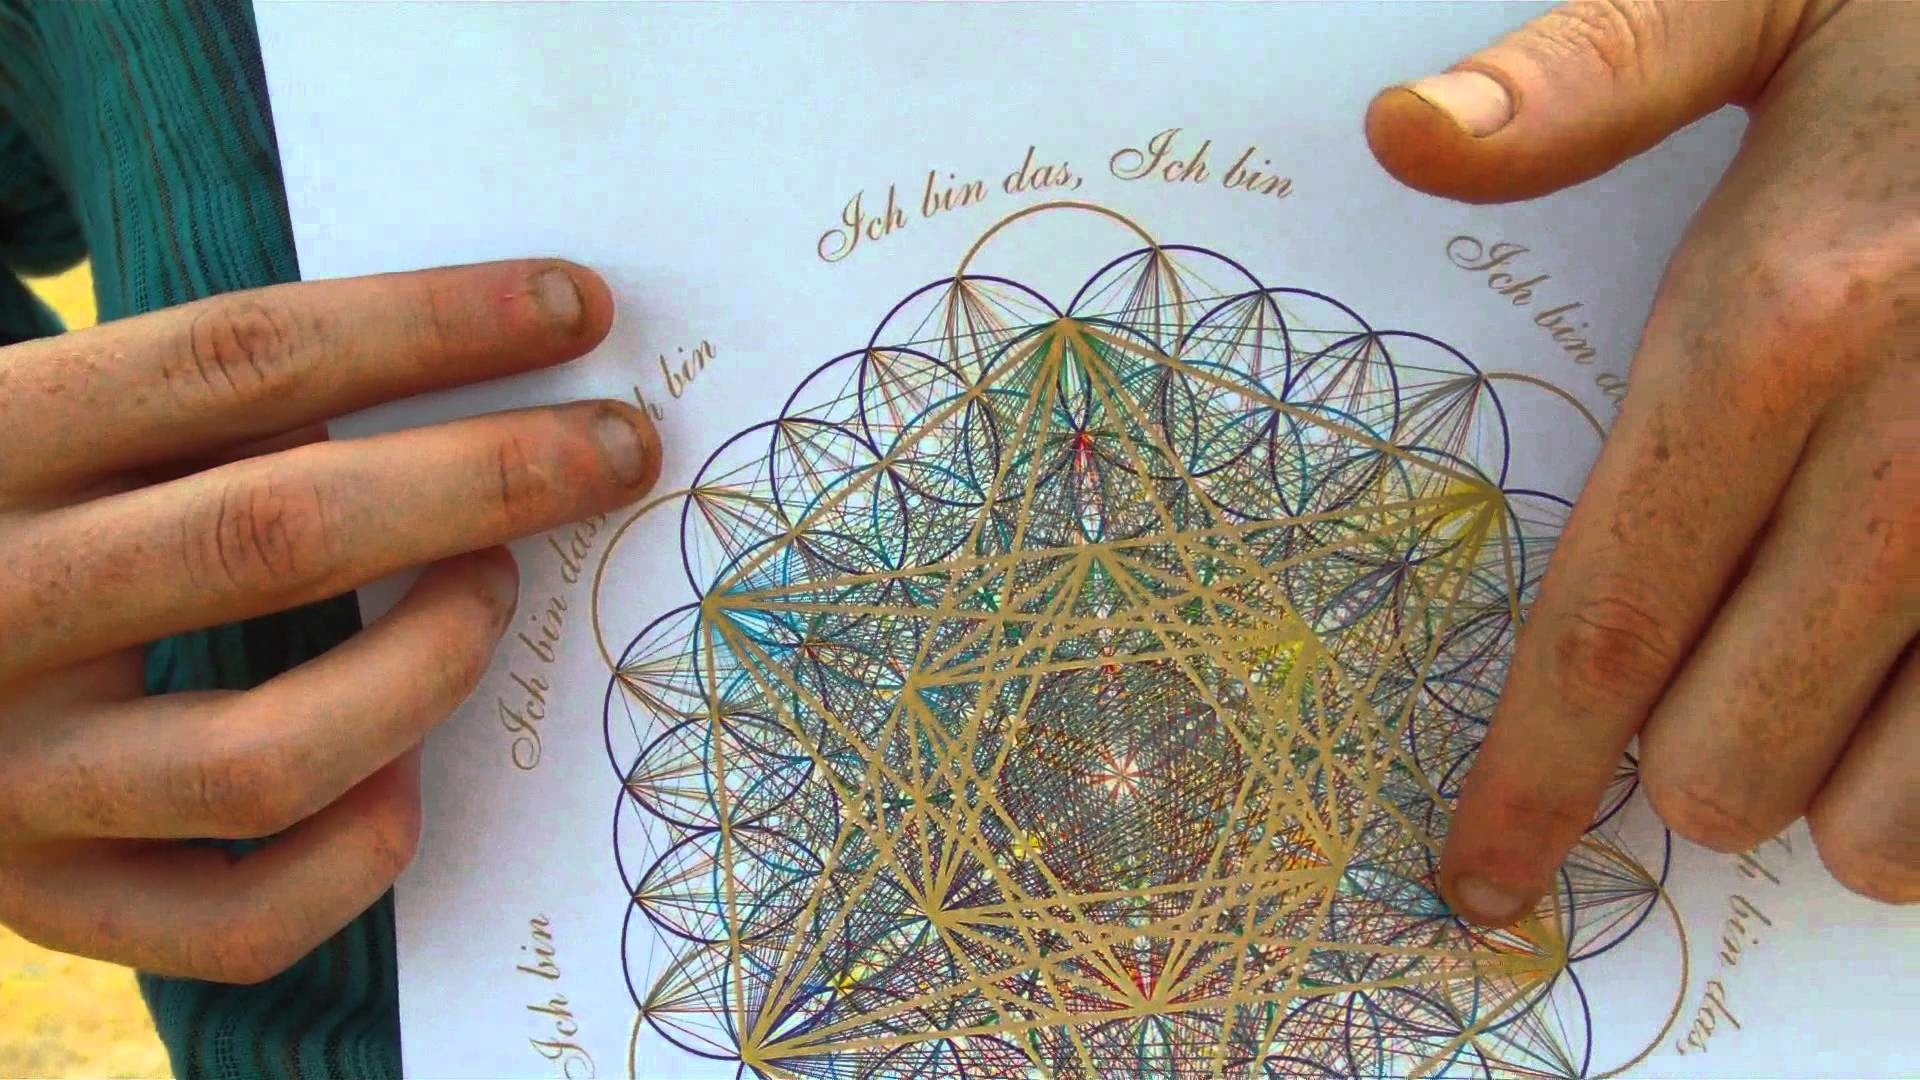 1920x1080 The Flower of Life & Metatron Cube